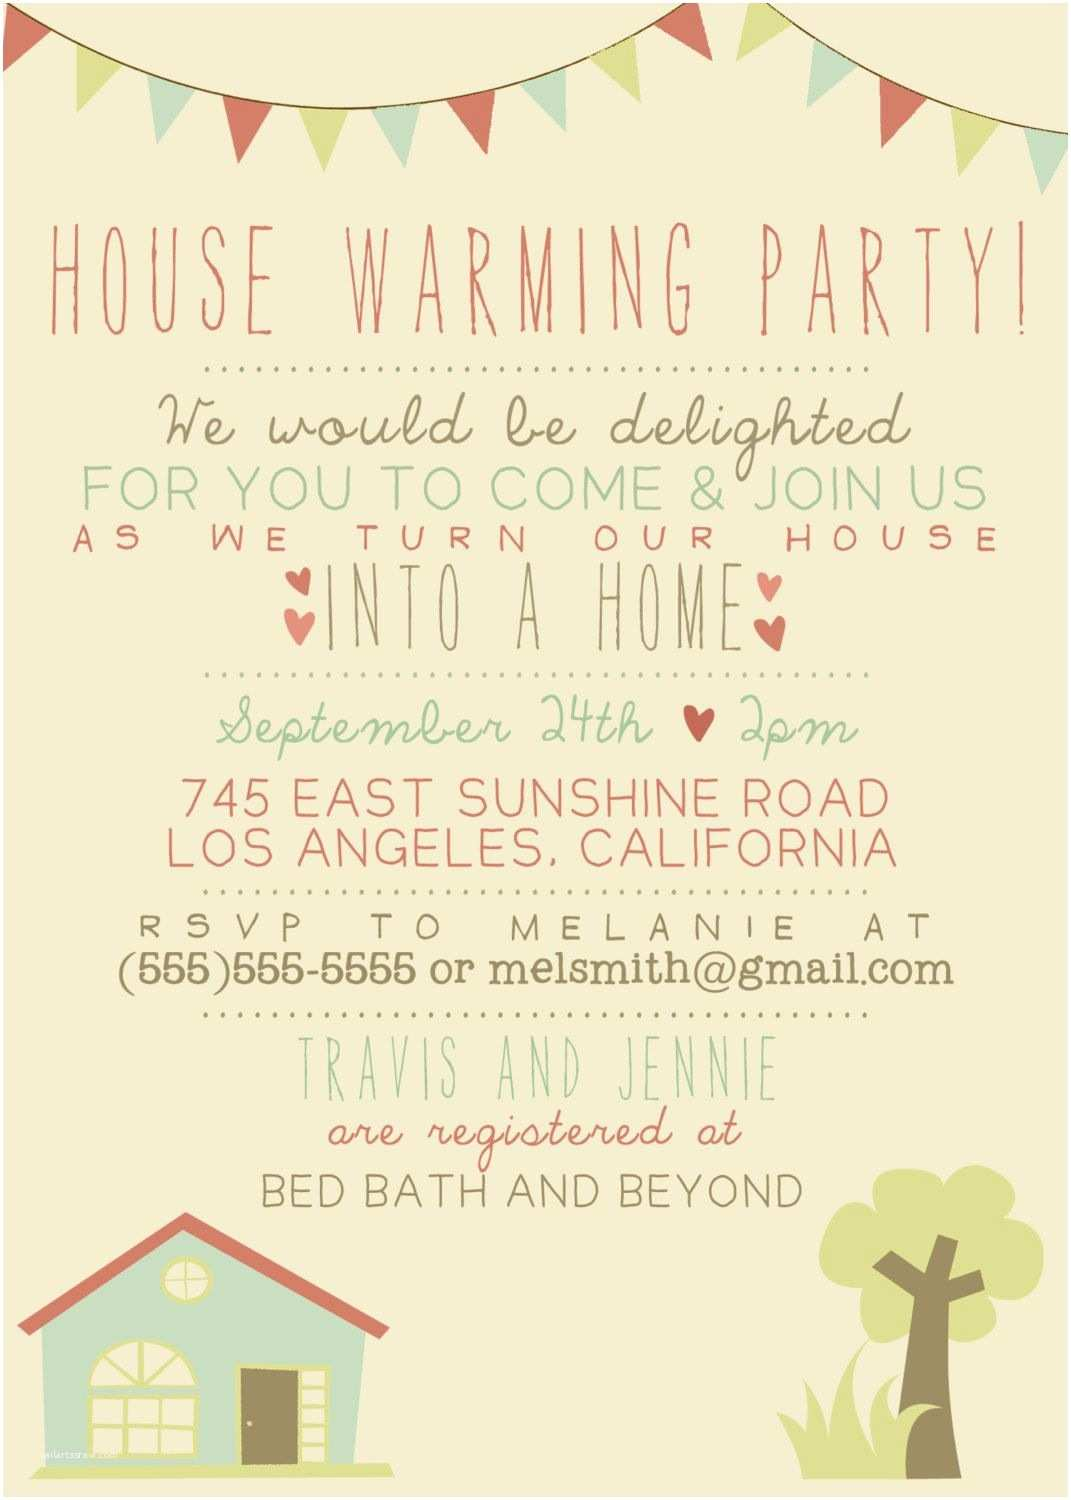 /housewarming/housewarming Invitations House Warming Party Invitation Printable Custom Diy